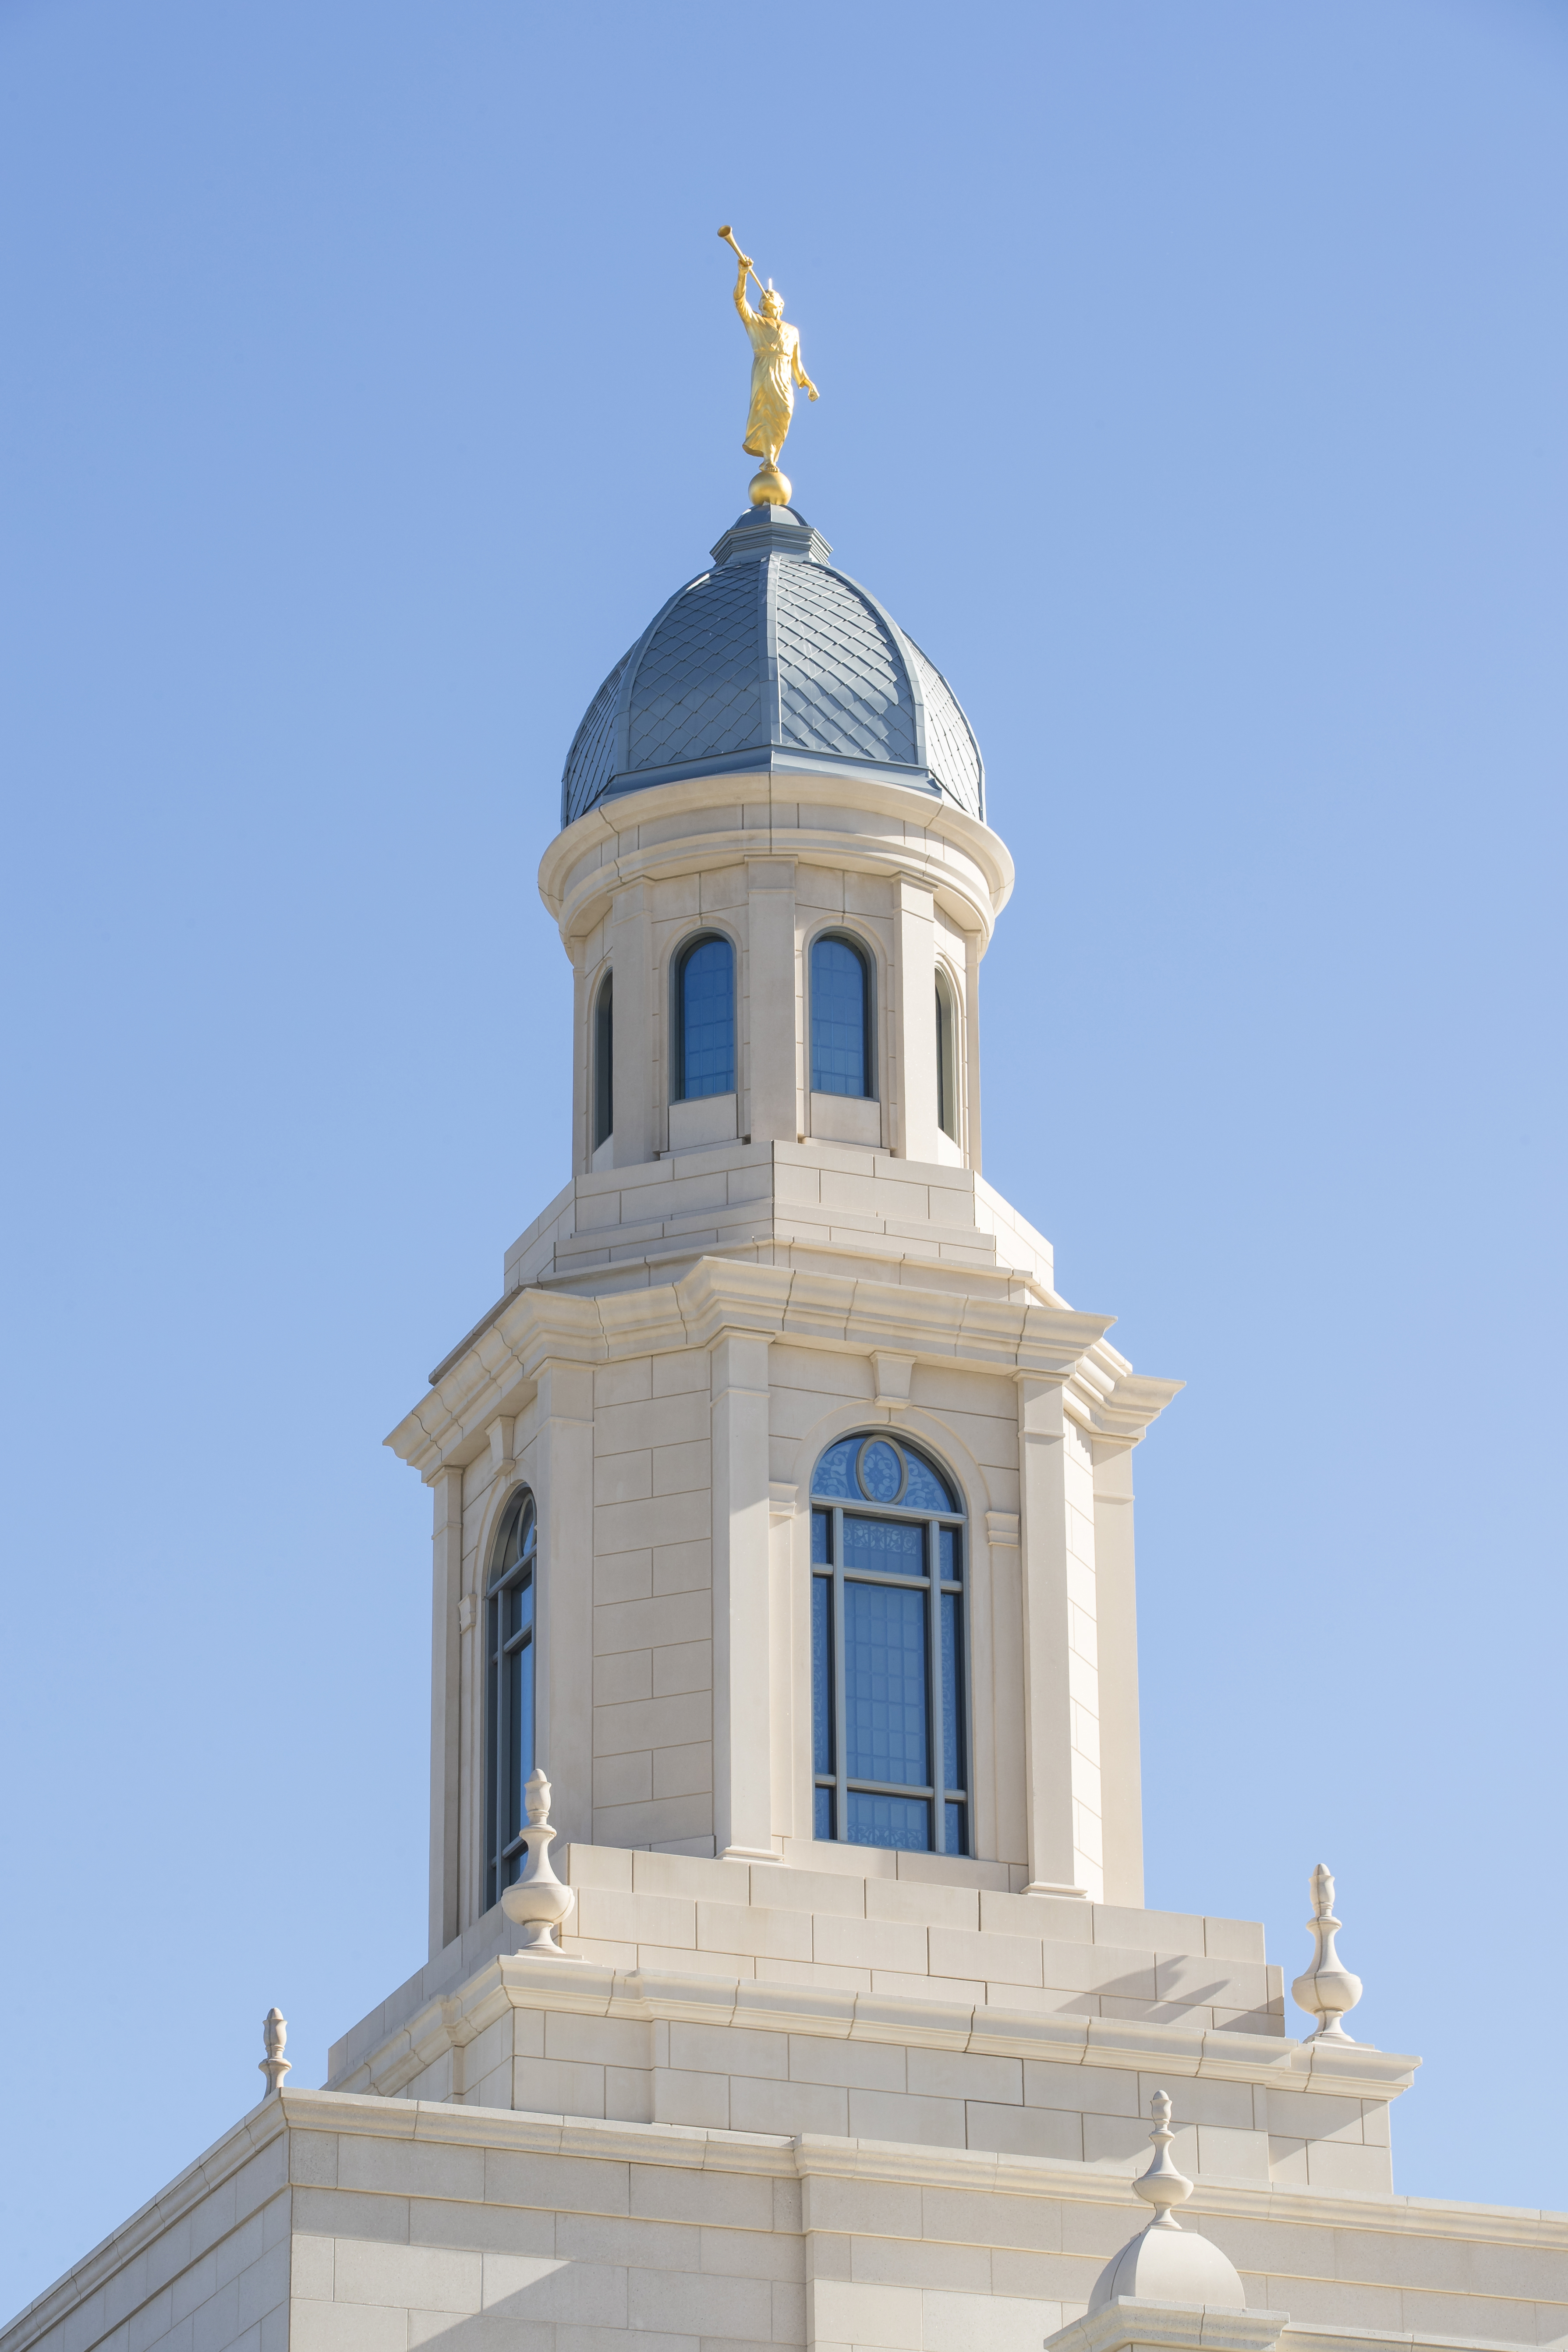 A view of the spire and angel Moroni statue on the Concepción Chile Temple.